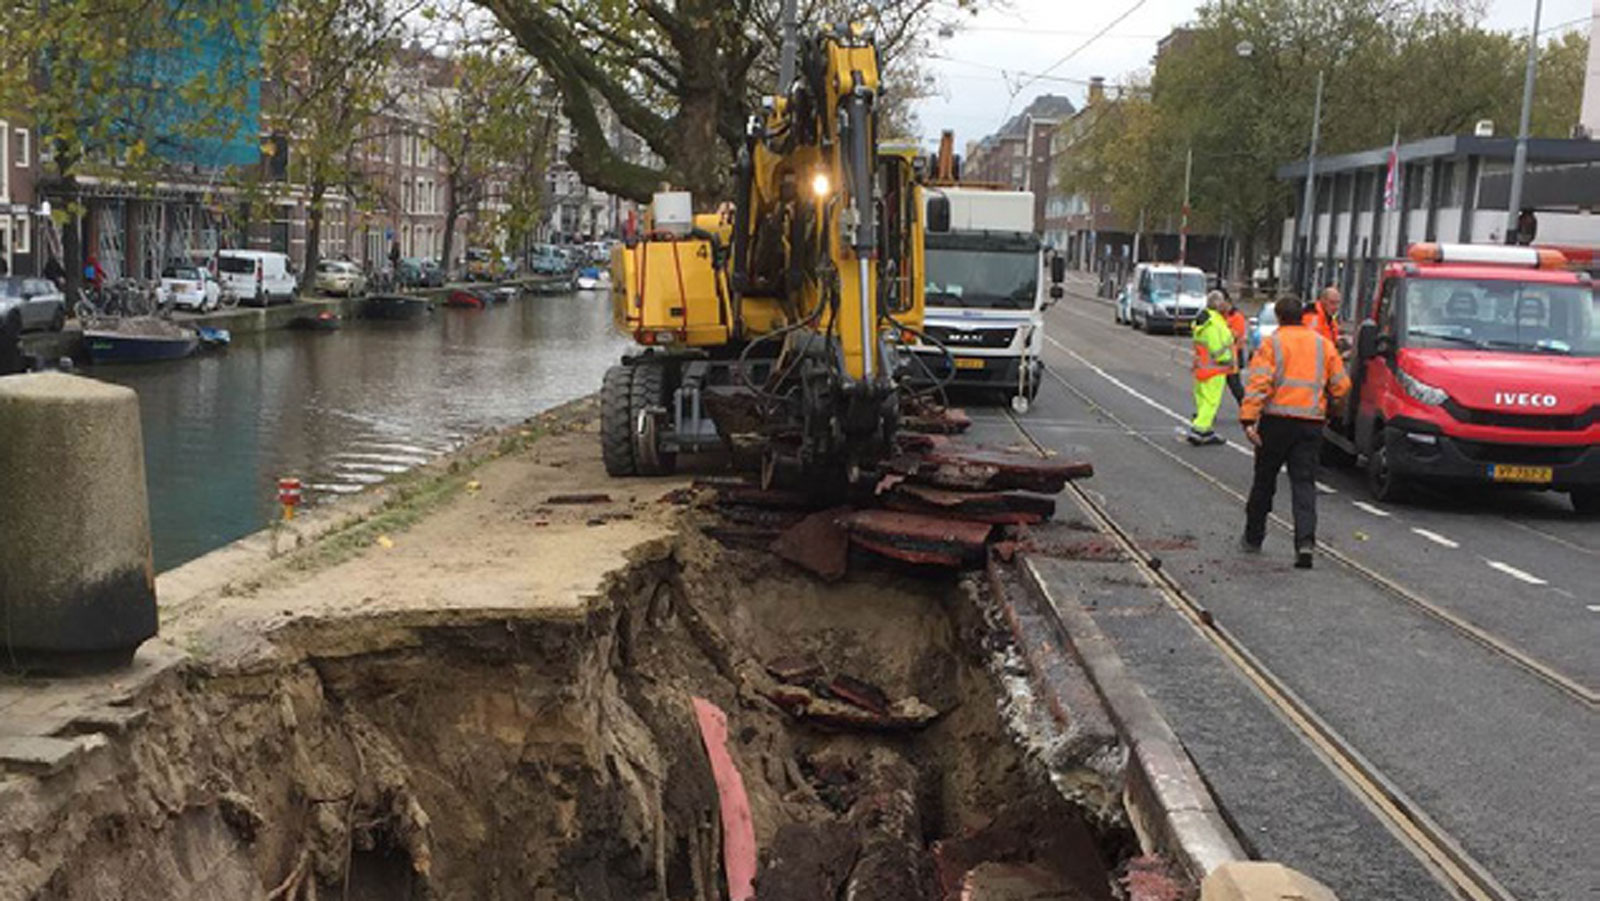 Amsterdam has been collapsing for years. Now it's paying the price ...